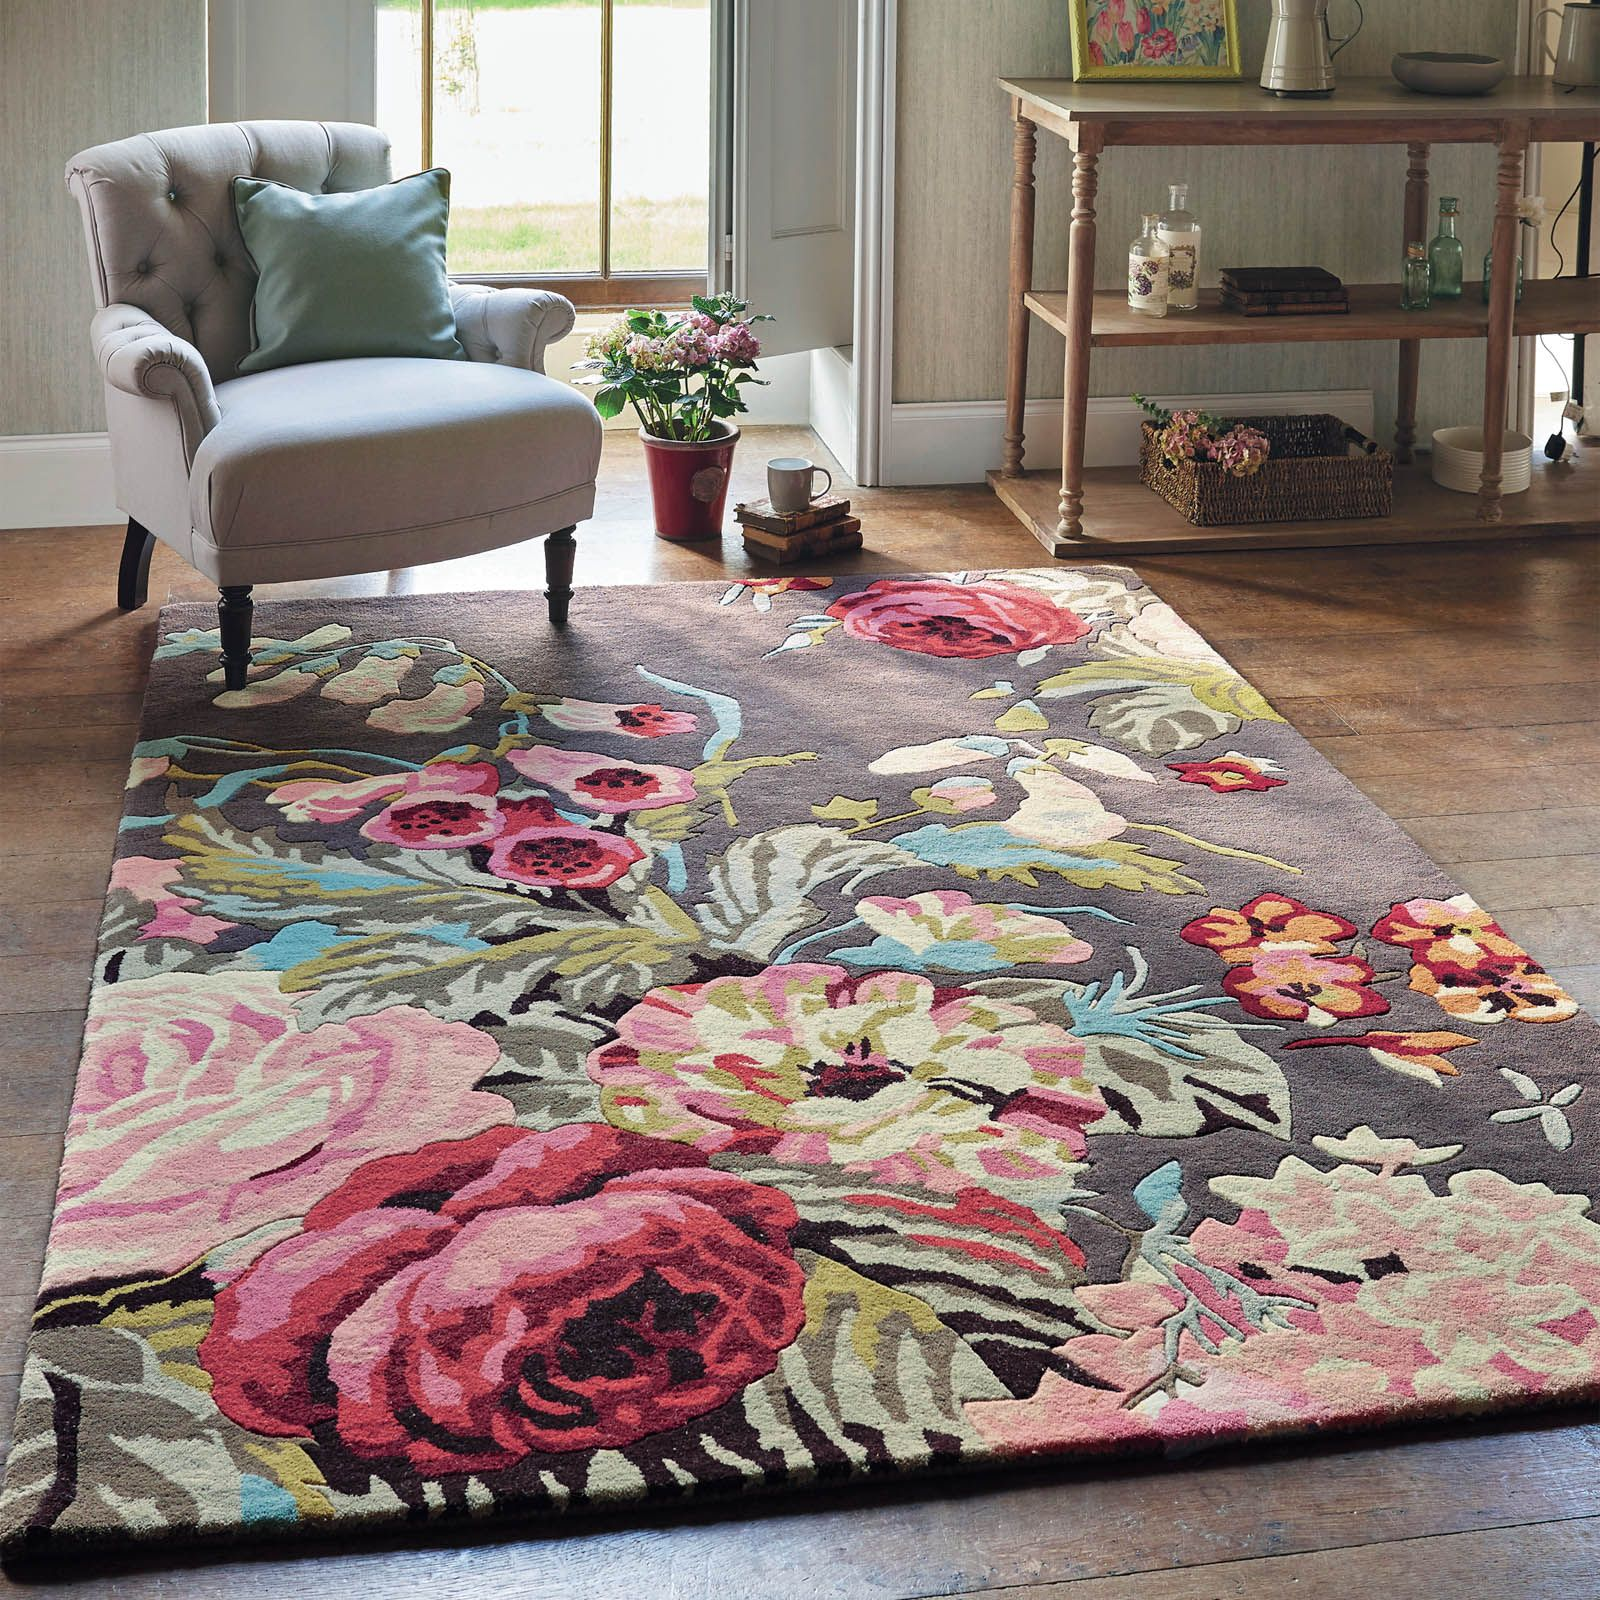 if you have a lot of pales golds whites pinks a bold u0026 distinct floral rug brings a lot of pizazz into the room esp if you are limited to what colors